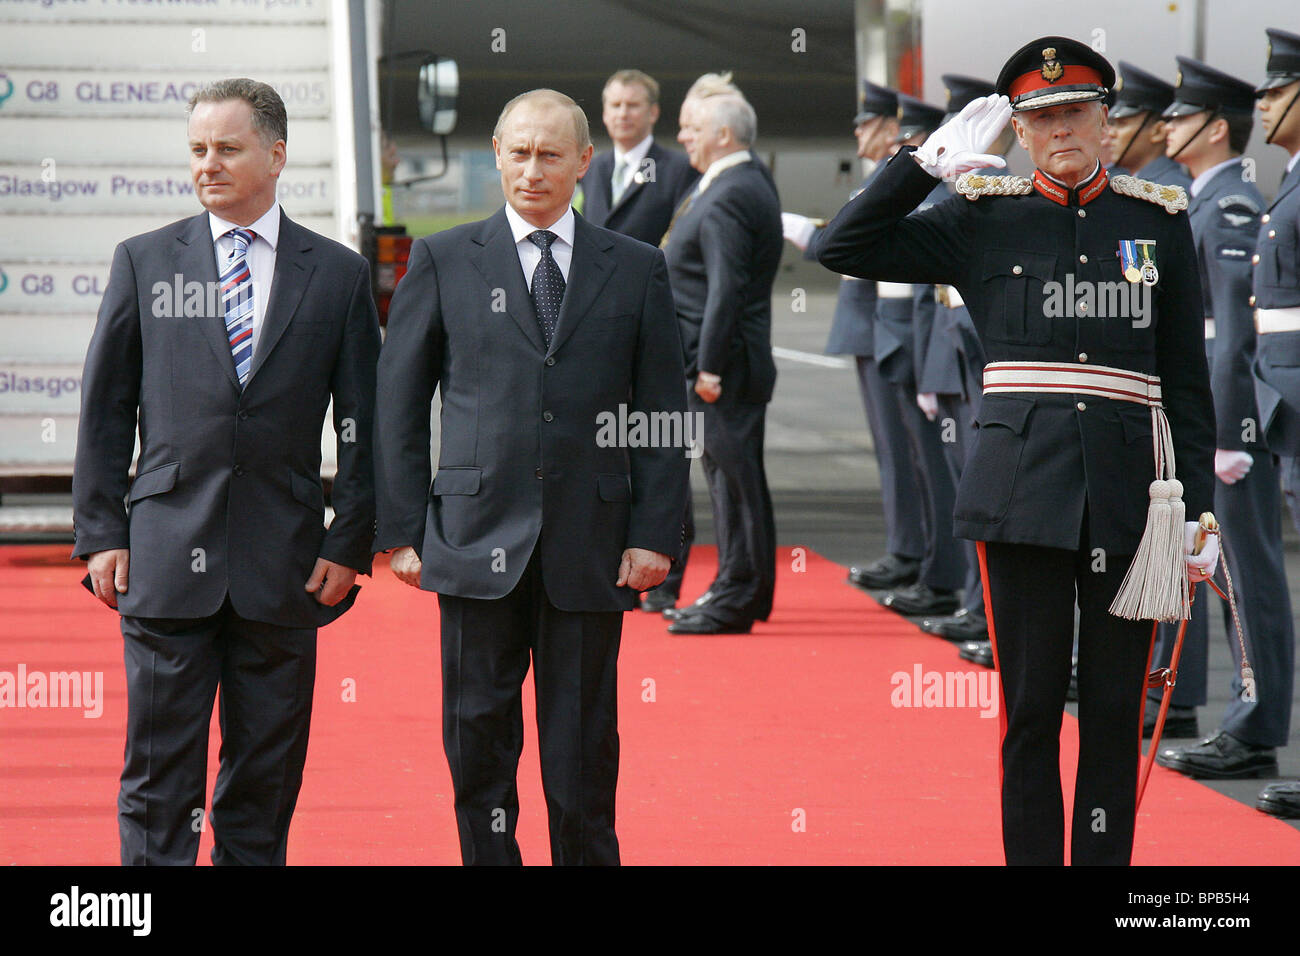 Russian President arrives in Scotland to participate in Group of Eight summit Stock Photo